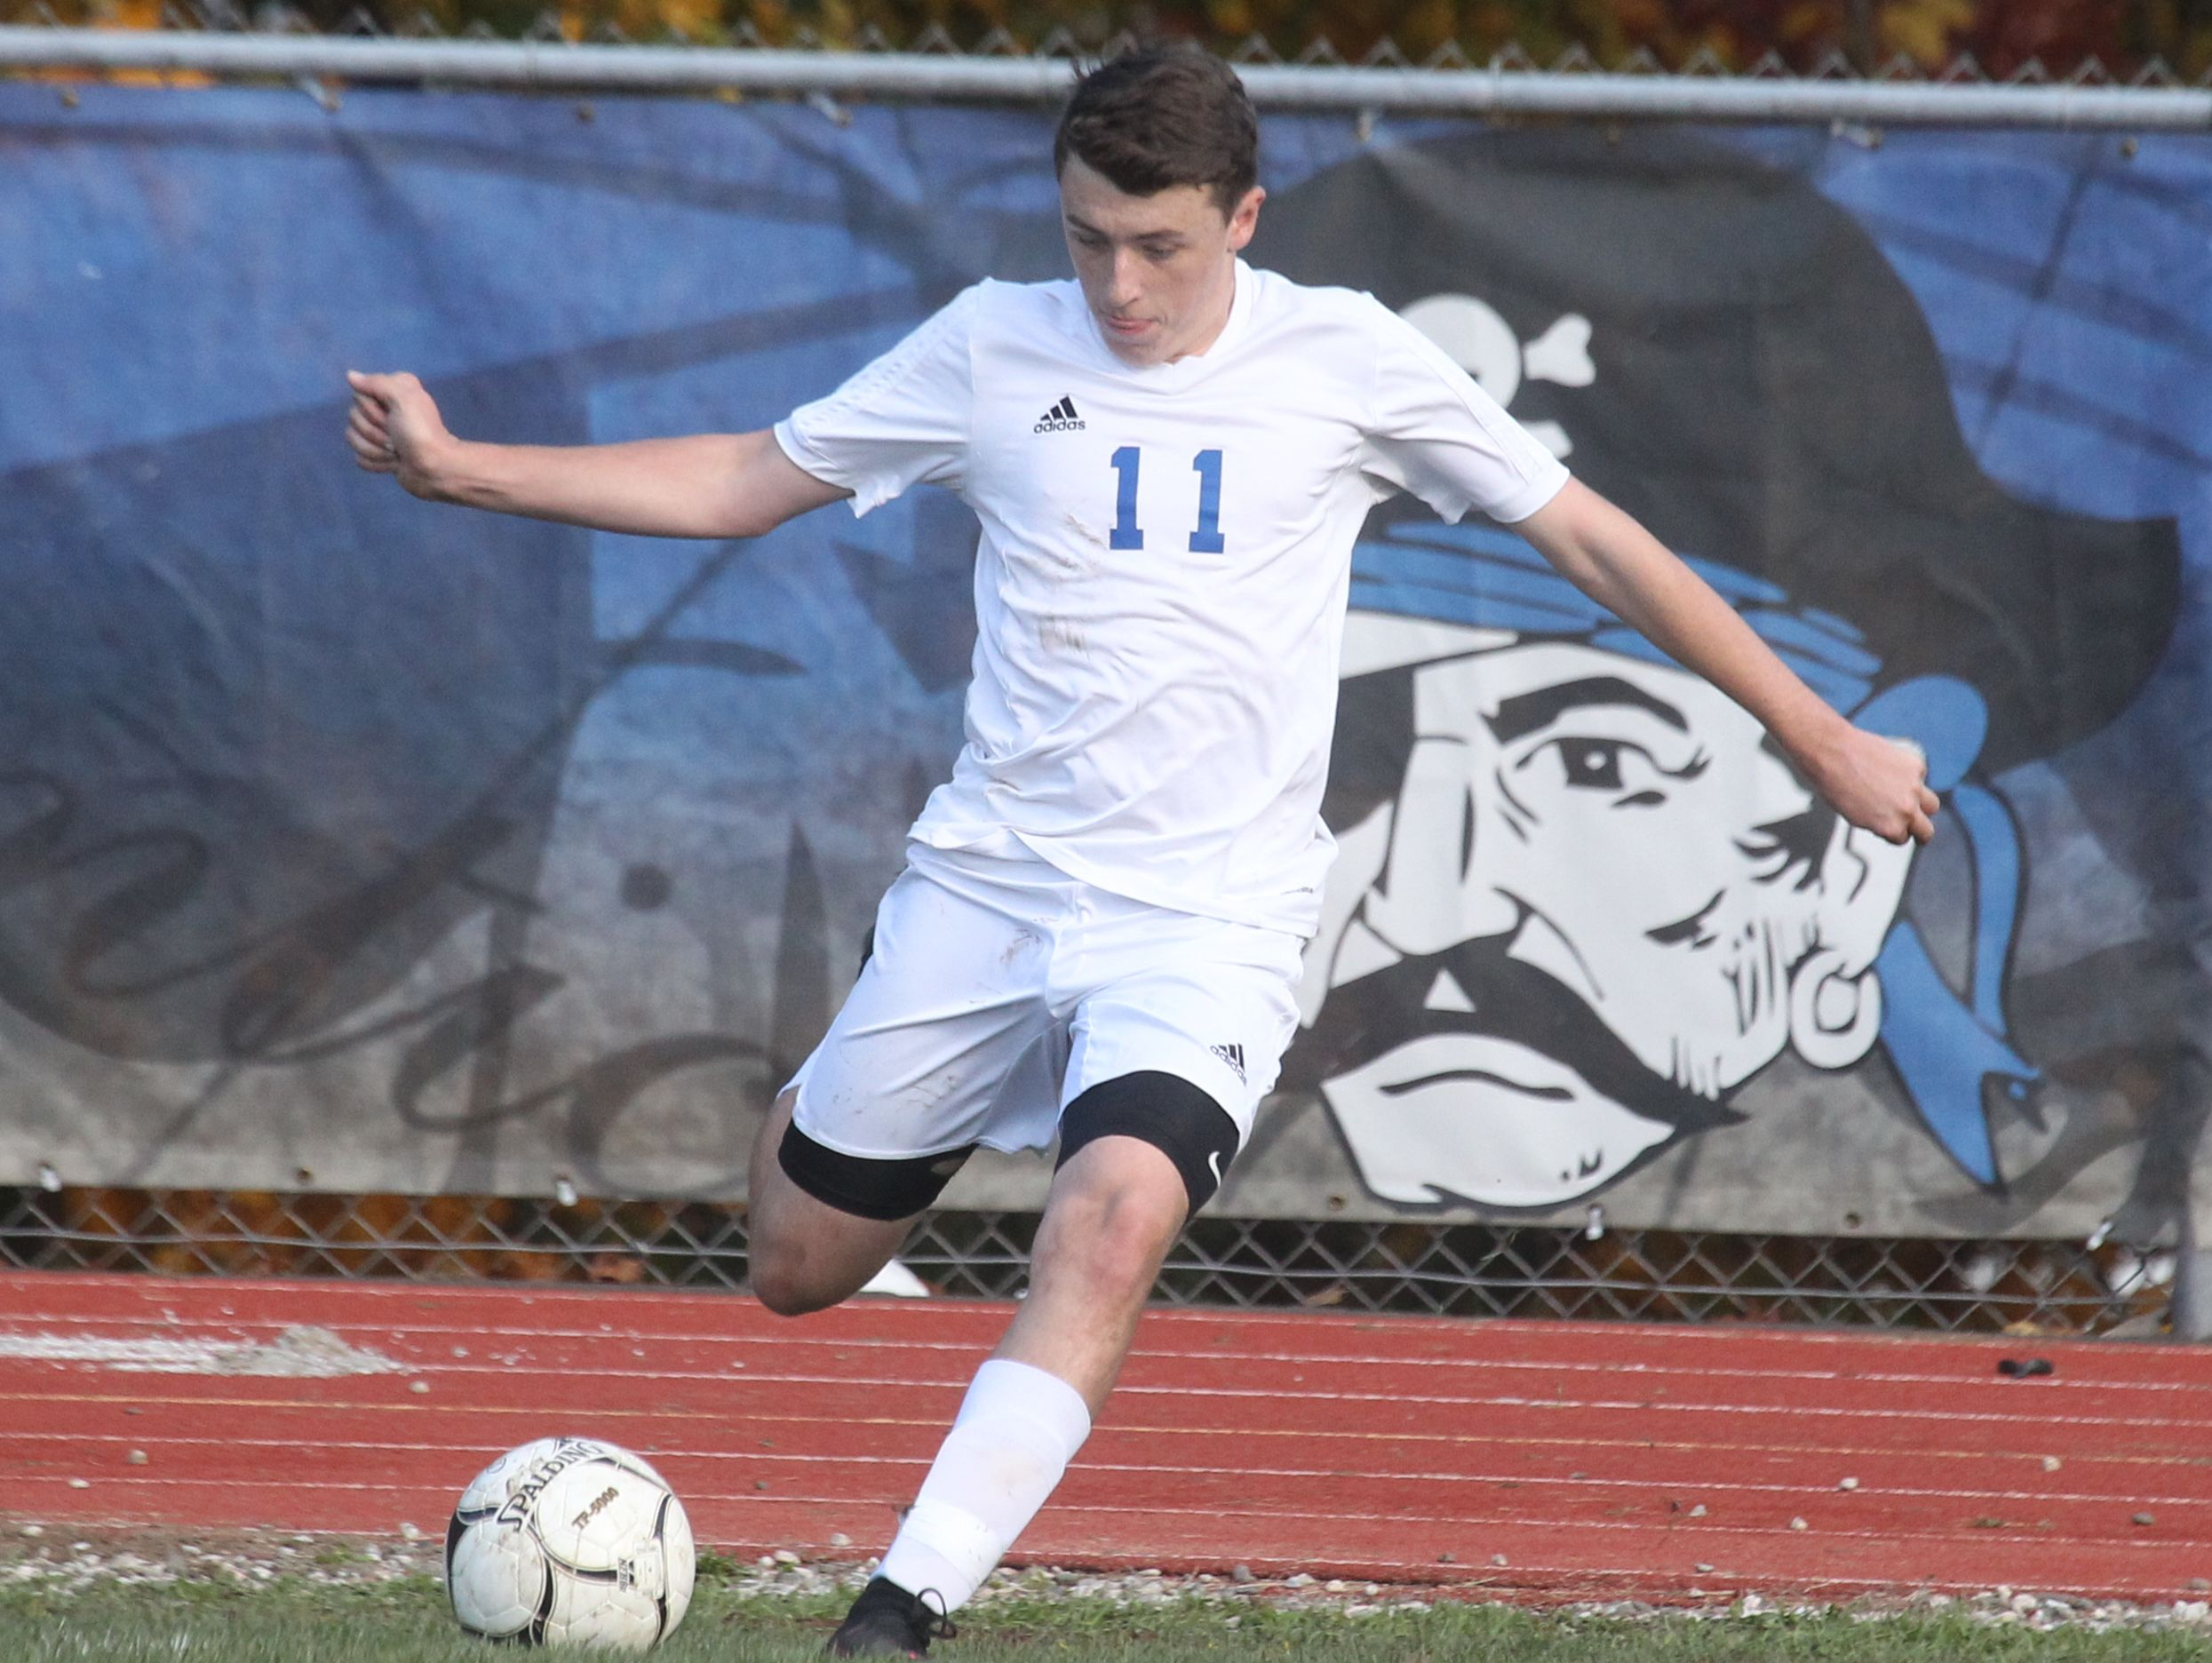 Pearl River beat Nanuet 2-1 in overtime of a Class A boys soccer quarterfinal at Pear River Oct. 24, 2016.